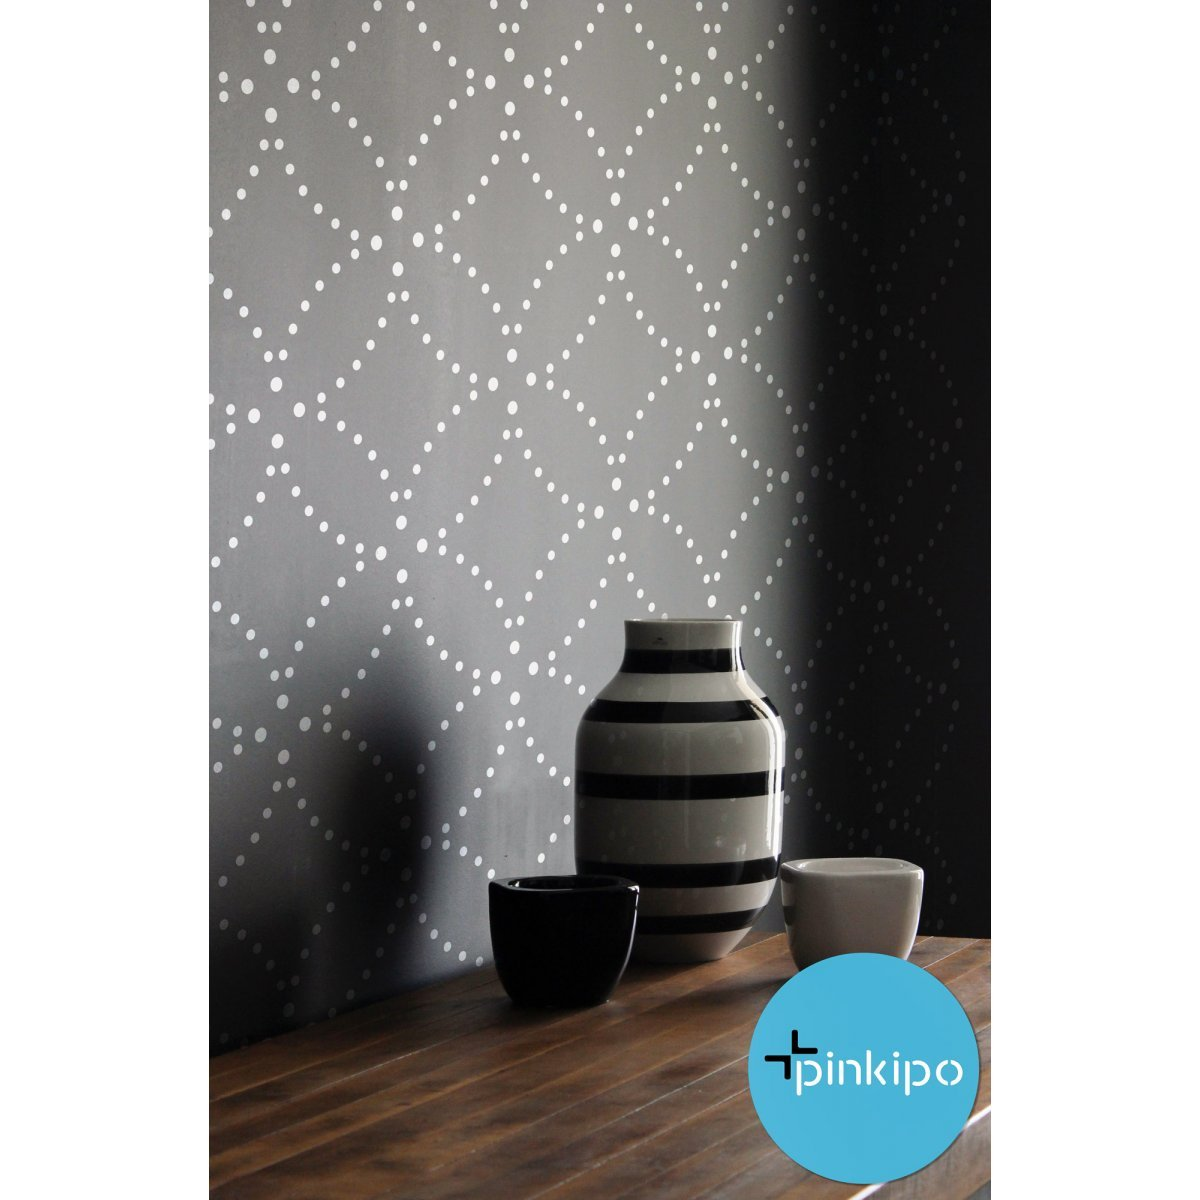 FLOWER OF LIFE SASHIKO / Reusable Allover Large Wall Stencils for Painting